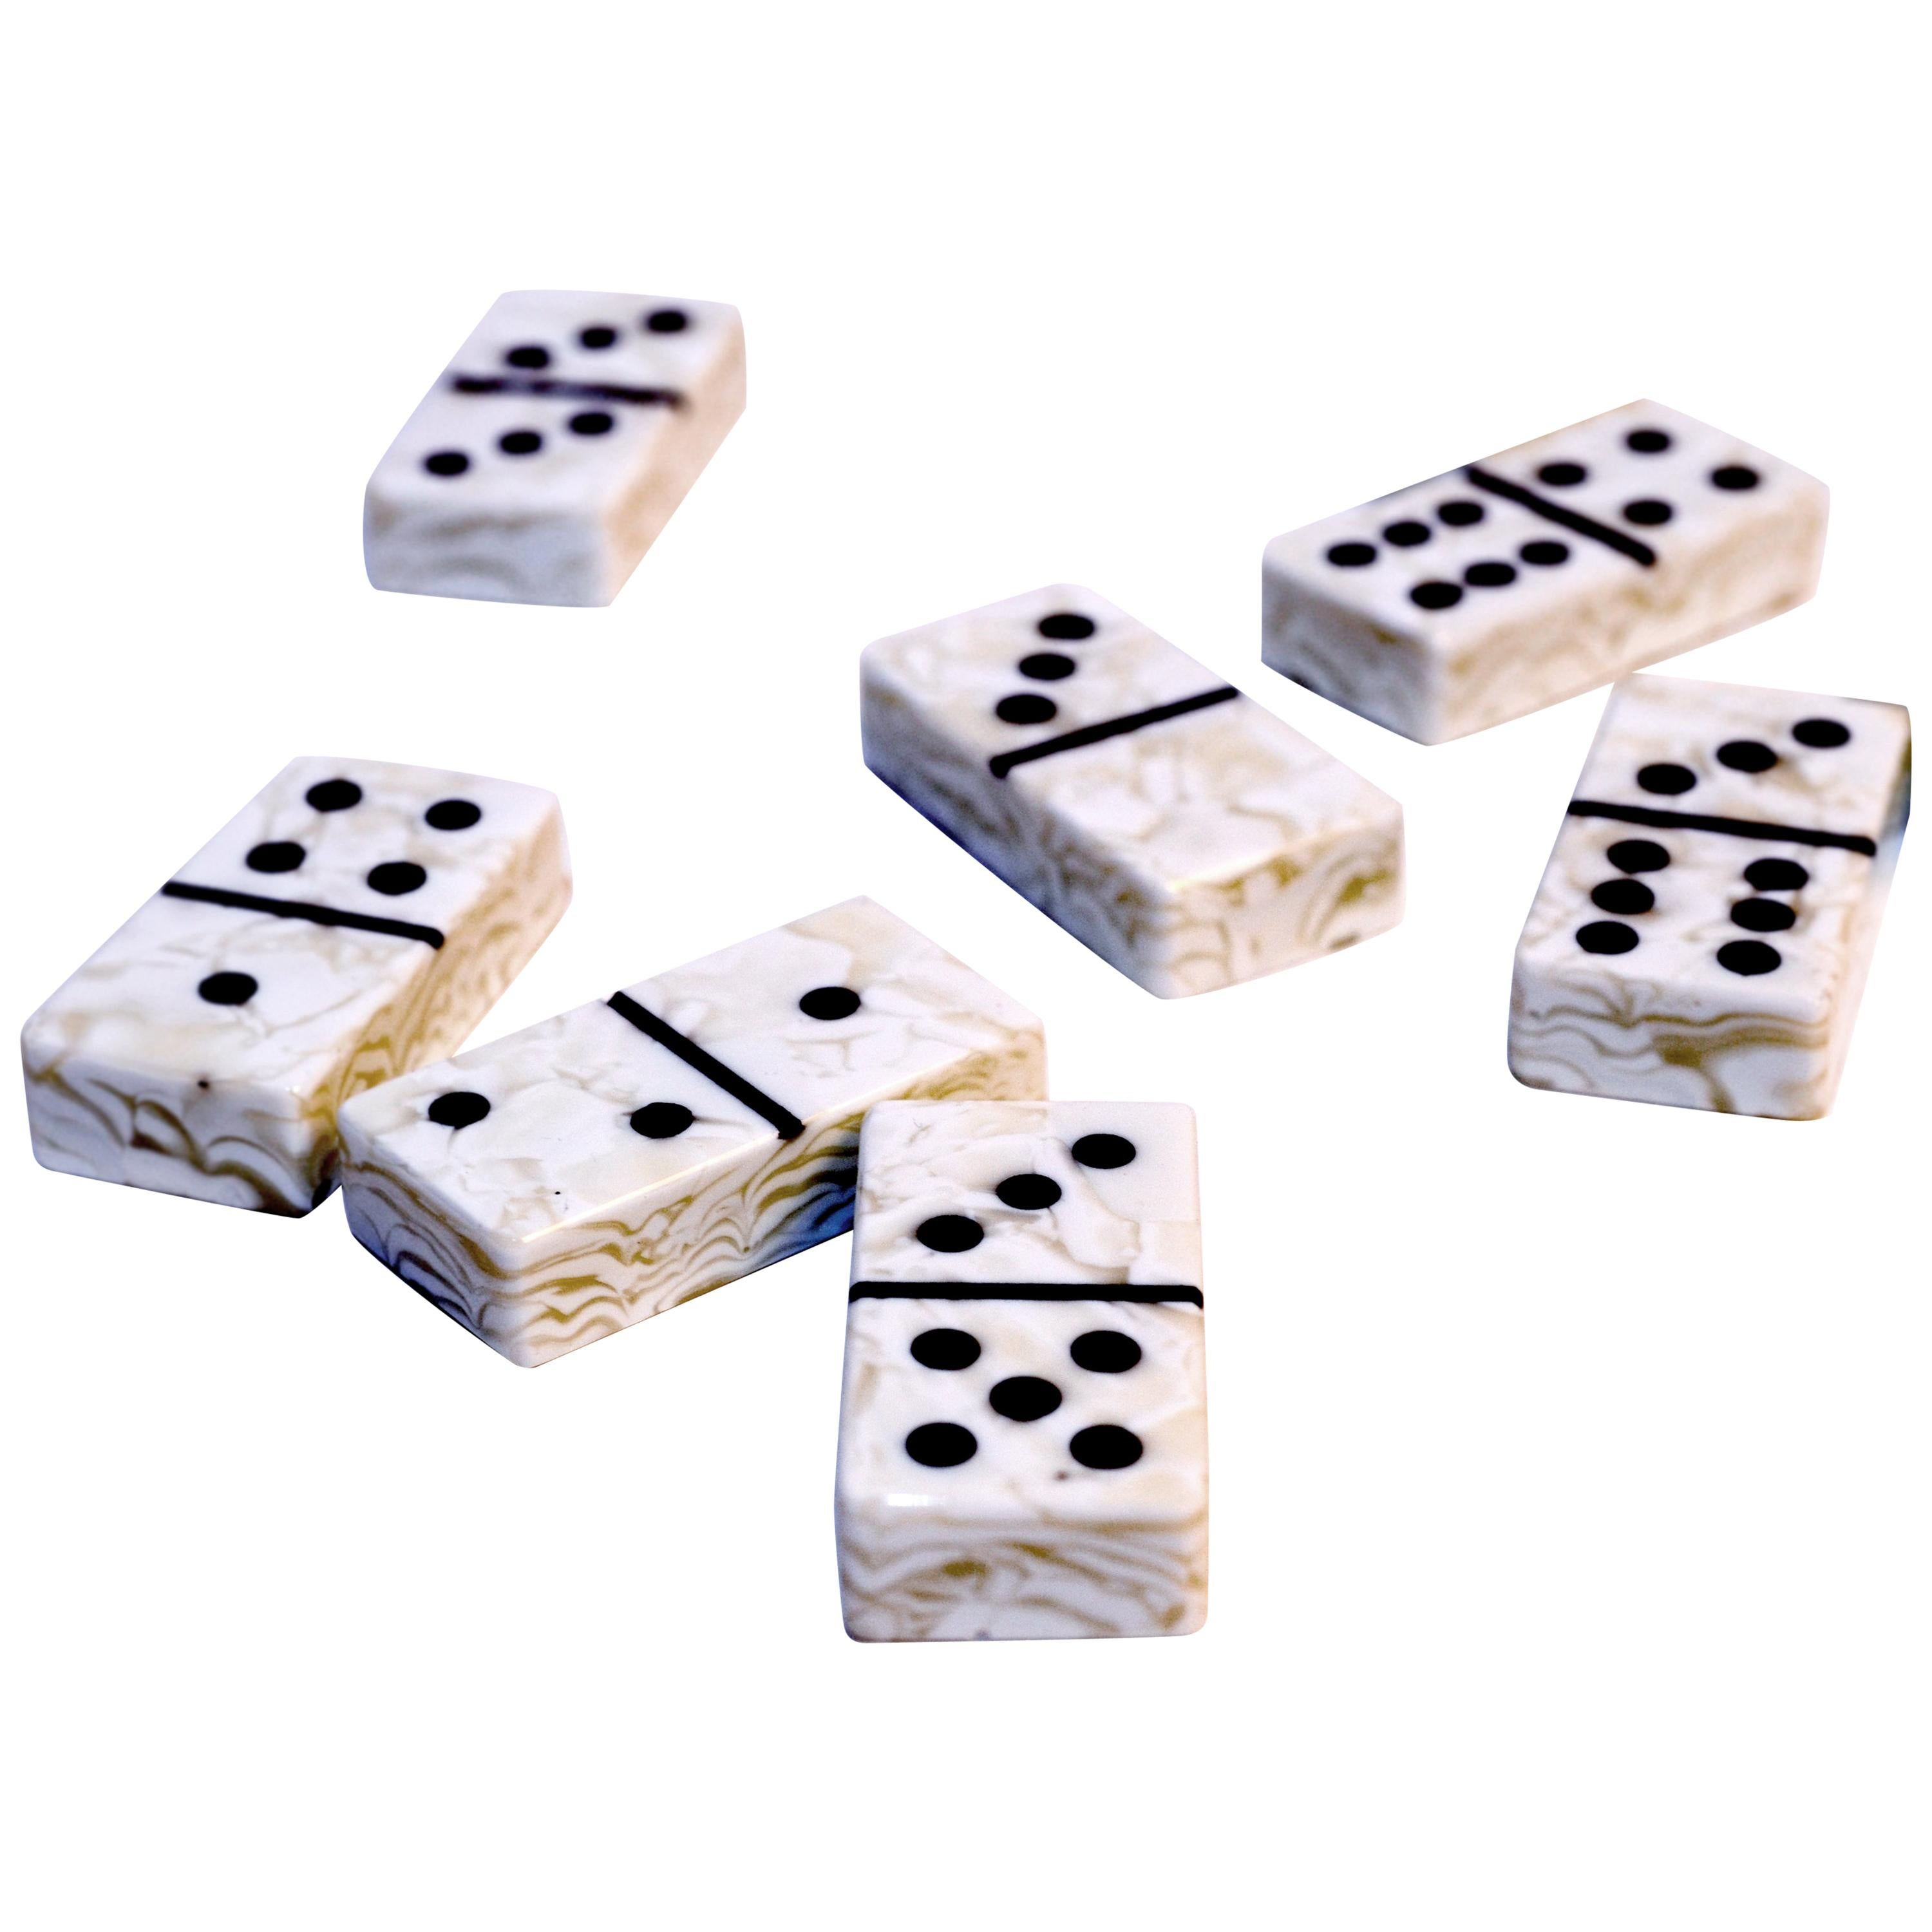 White Boiled Art Glass Domino Collection with Wood Case